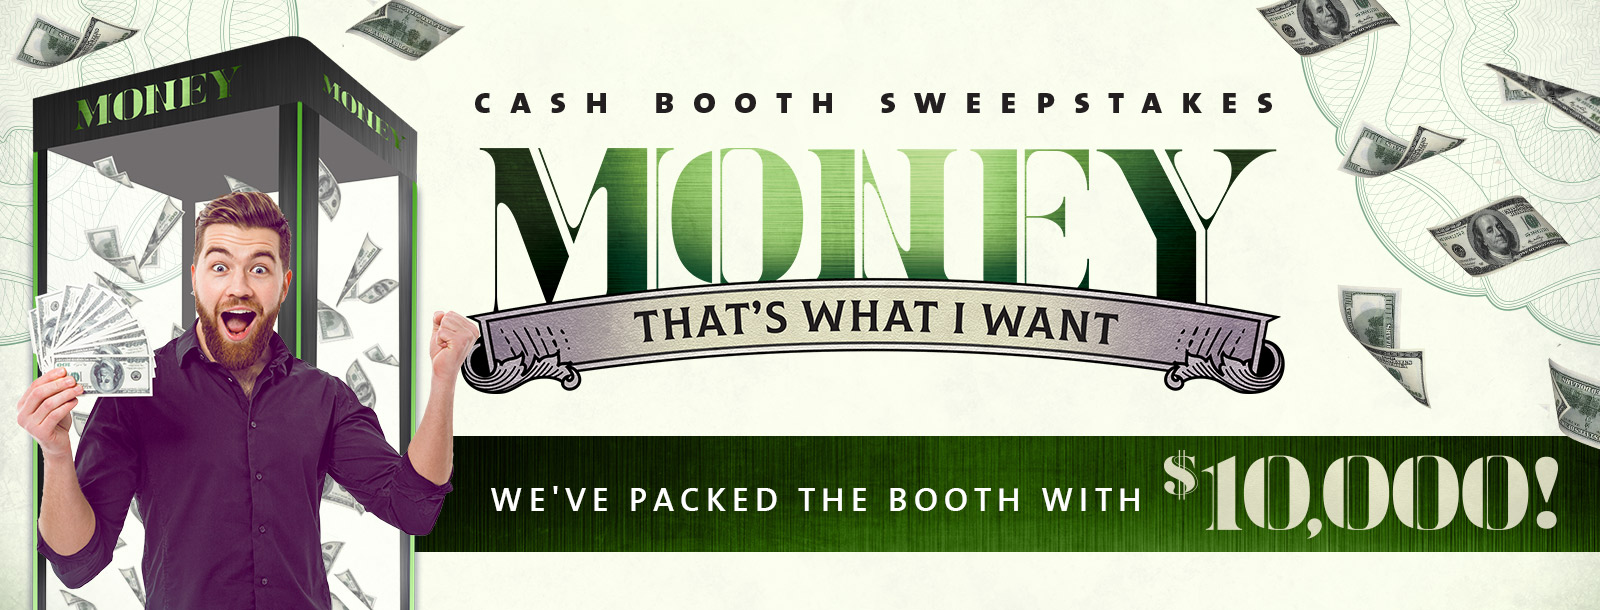 cash booth sweeps